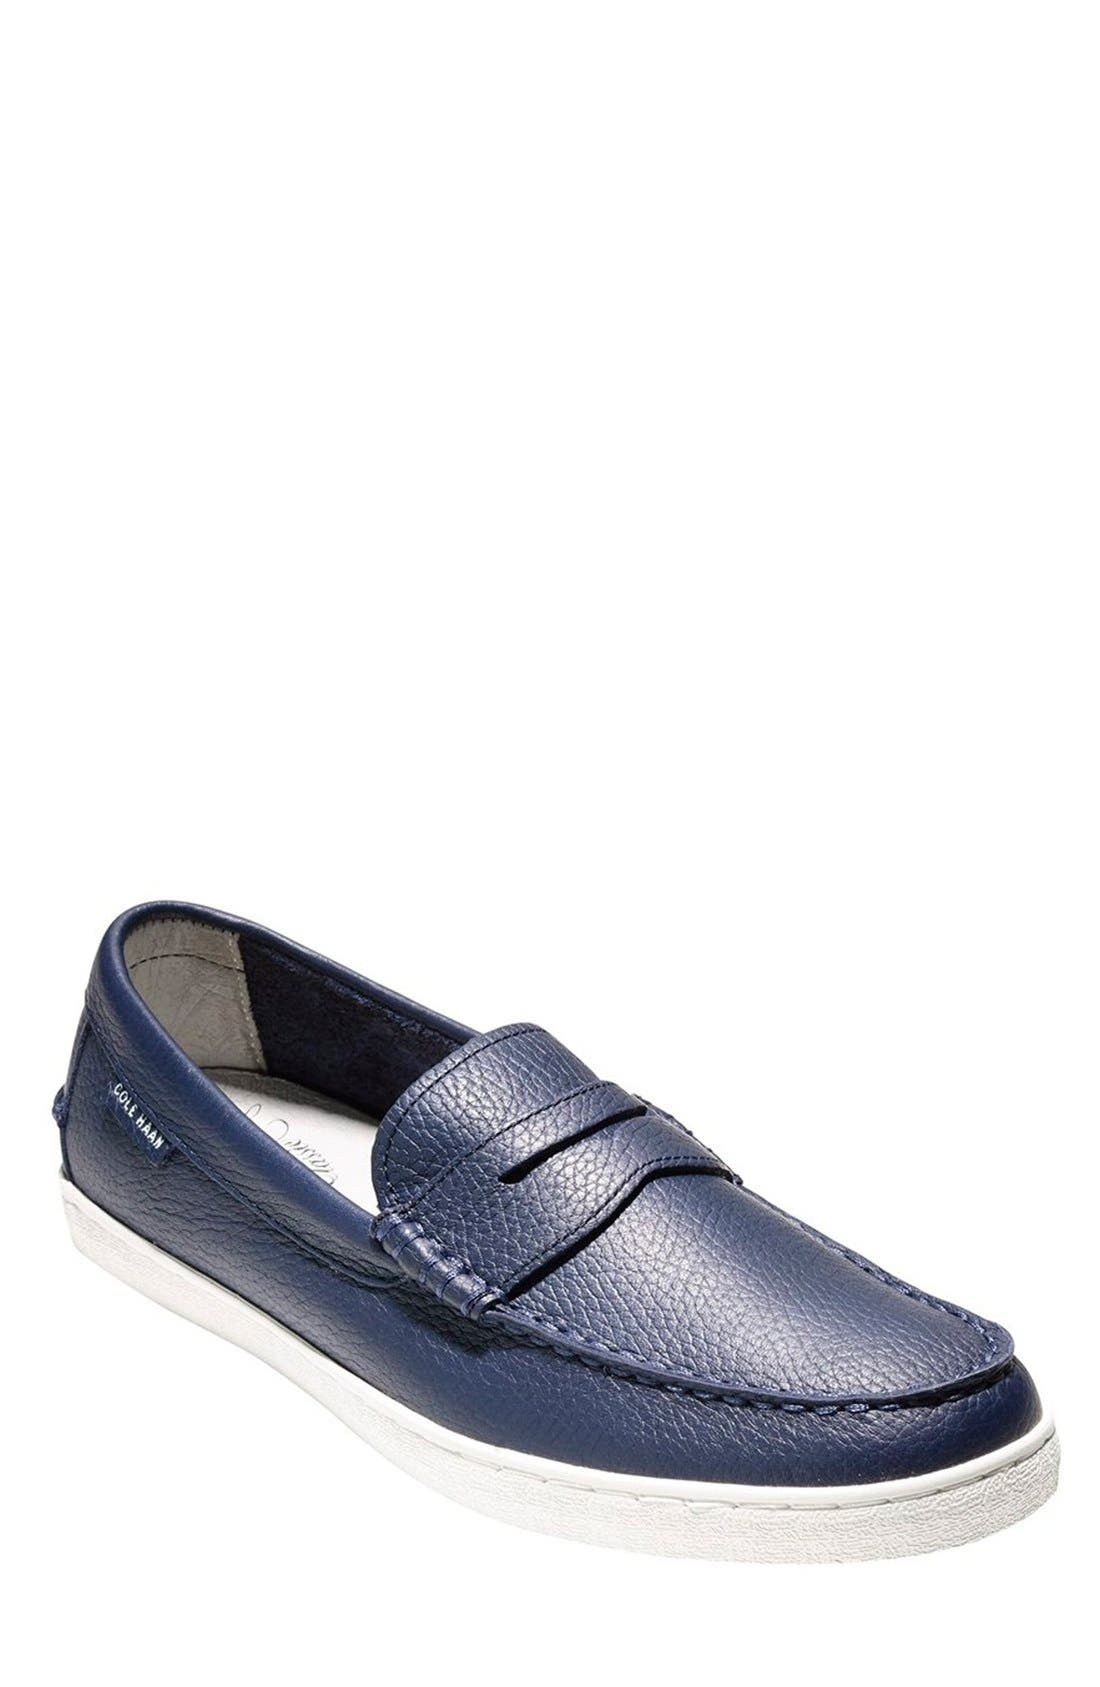 'Pinch' Penny Loafer,                         Main,                         color, PEACOAT LEATHER/ WHITE